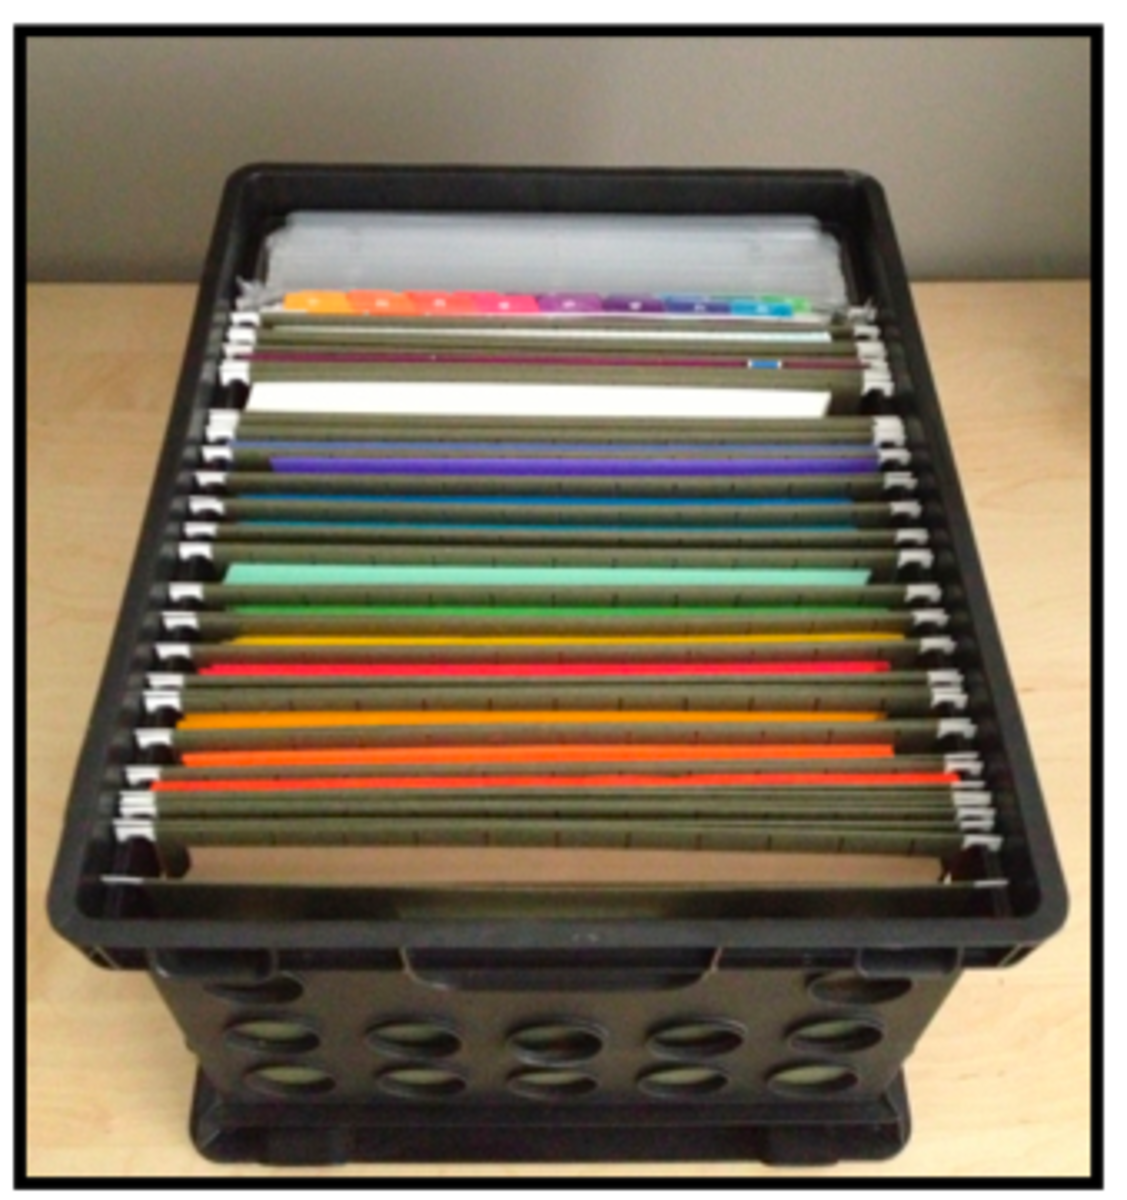 All you need is a bin that will hold file folders, some labels and the file folders.